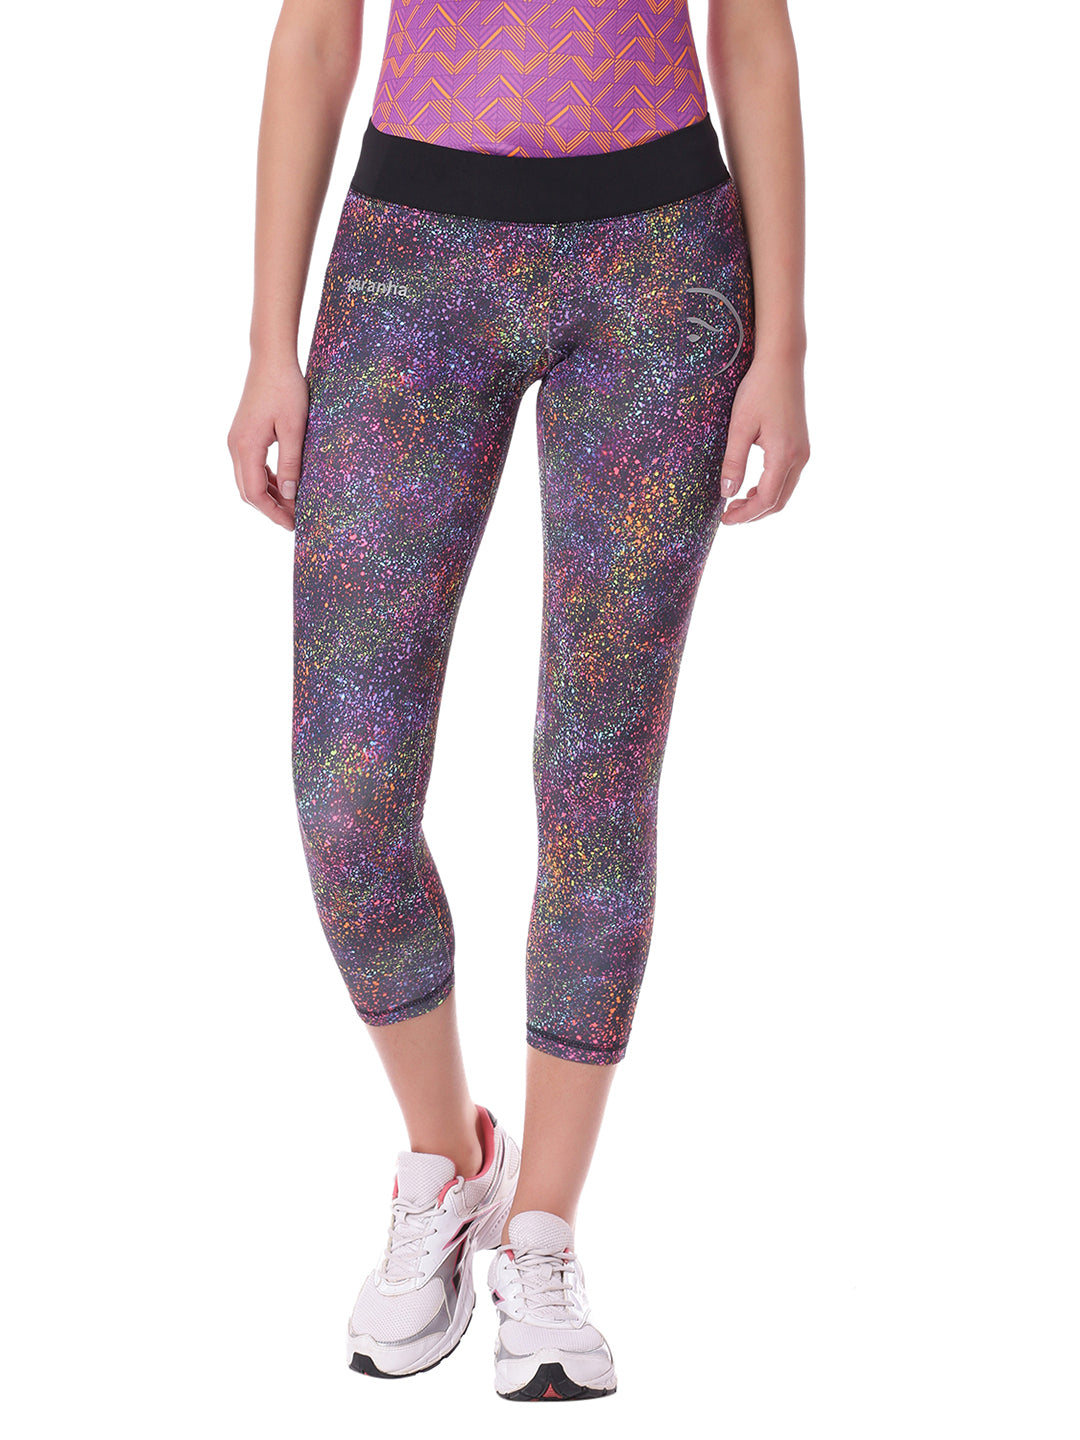 Piranha Women Purple Printed Yoga And Running Pants - YP08